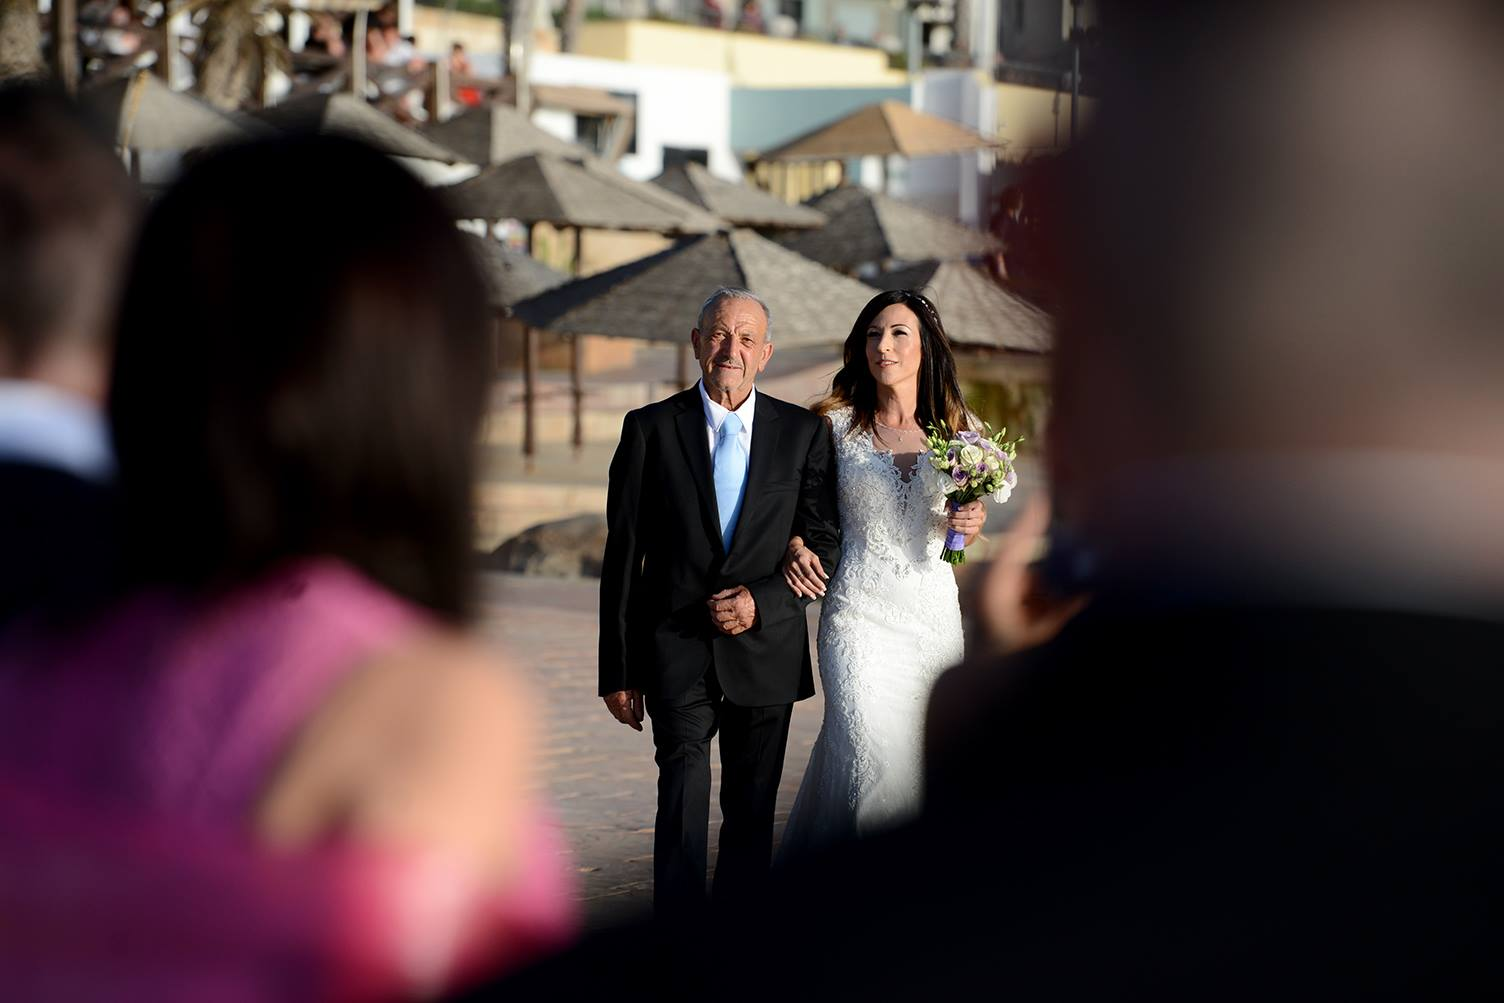 Wed in Malta weddings - Wedding by the water's edge - Malta